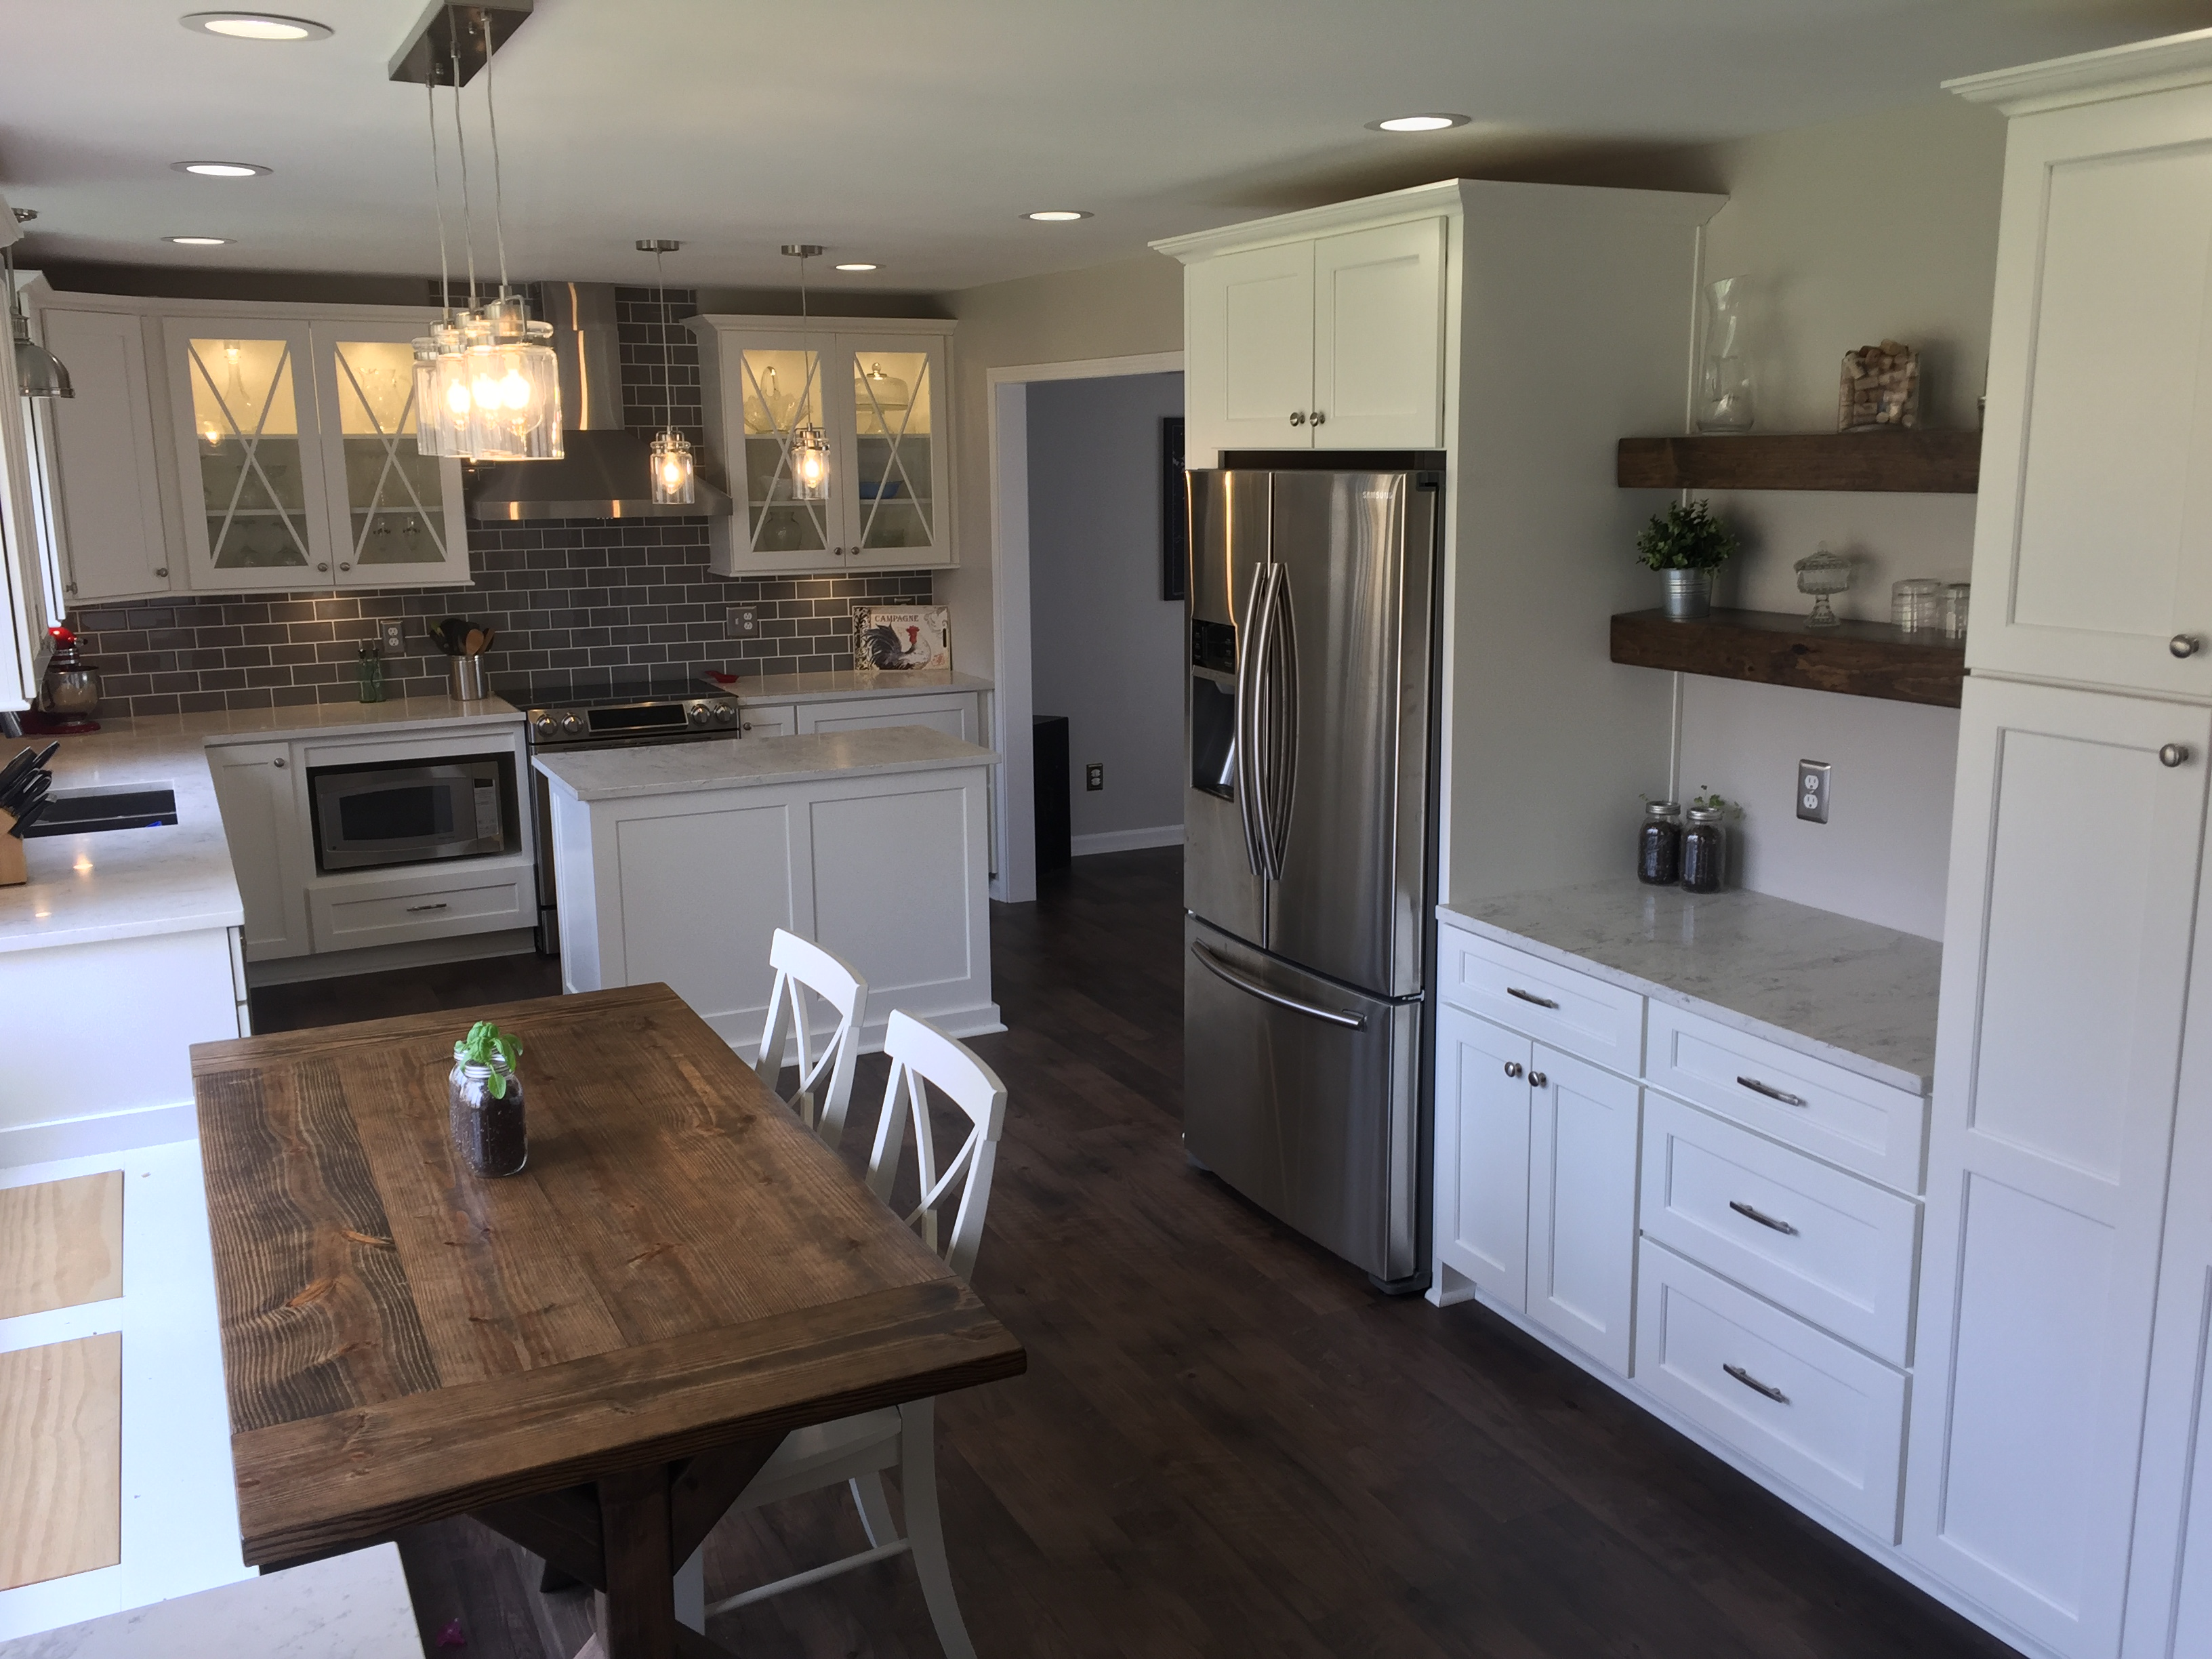 Beau Discount, Wholesale Prices Kitchen Cabinets Indianapolis